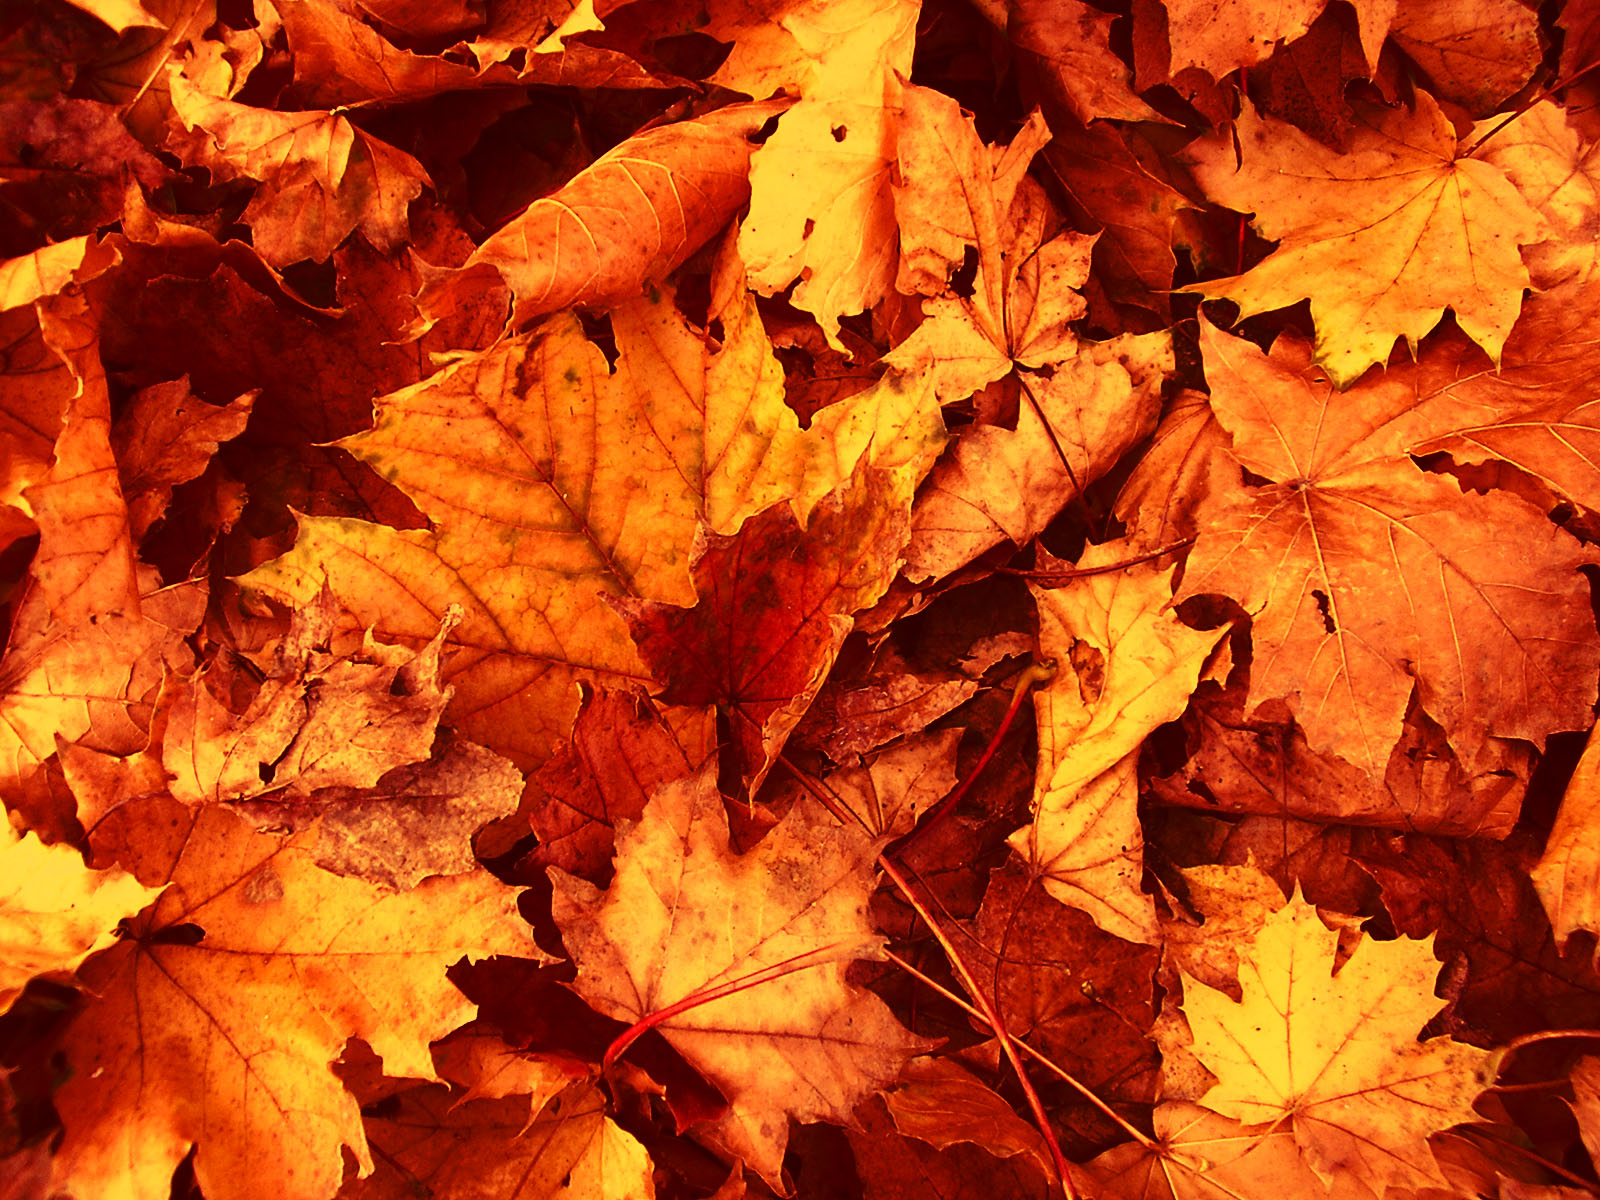 Autumn Leaves Wallpaper 1600x1200 70283